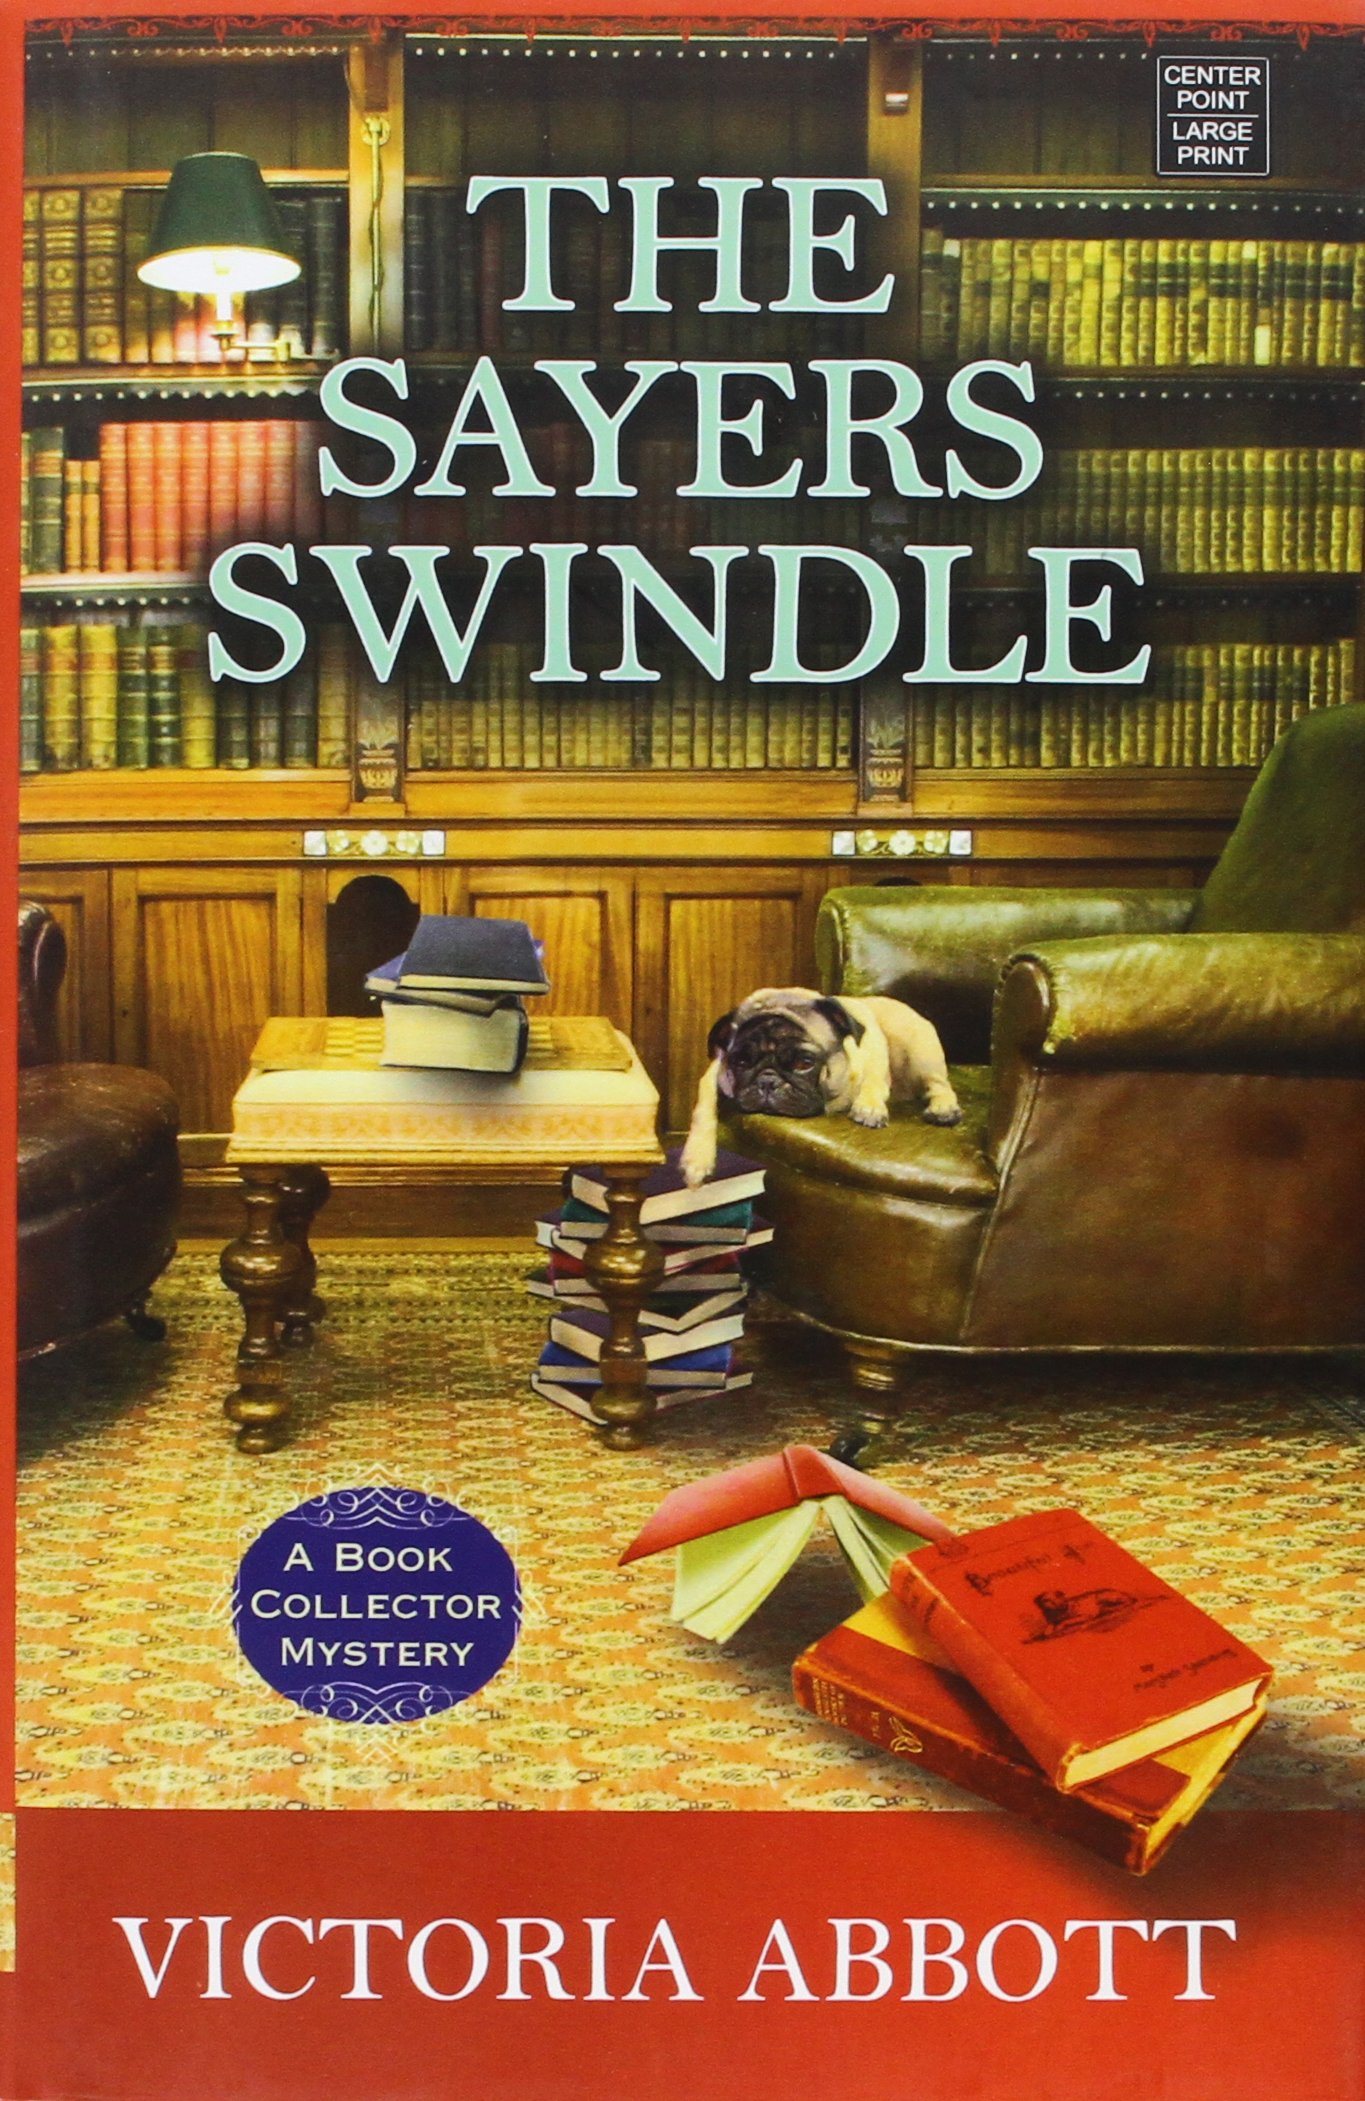 The Sayers Swindle (A Book Collector Mystery) ebook